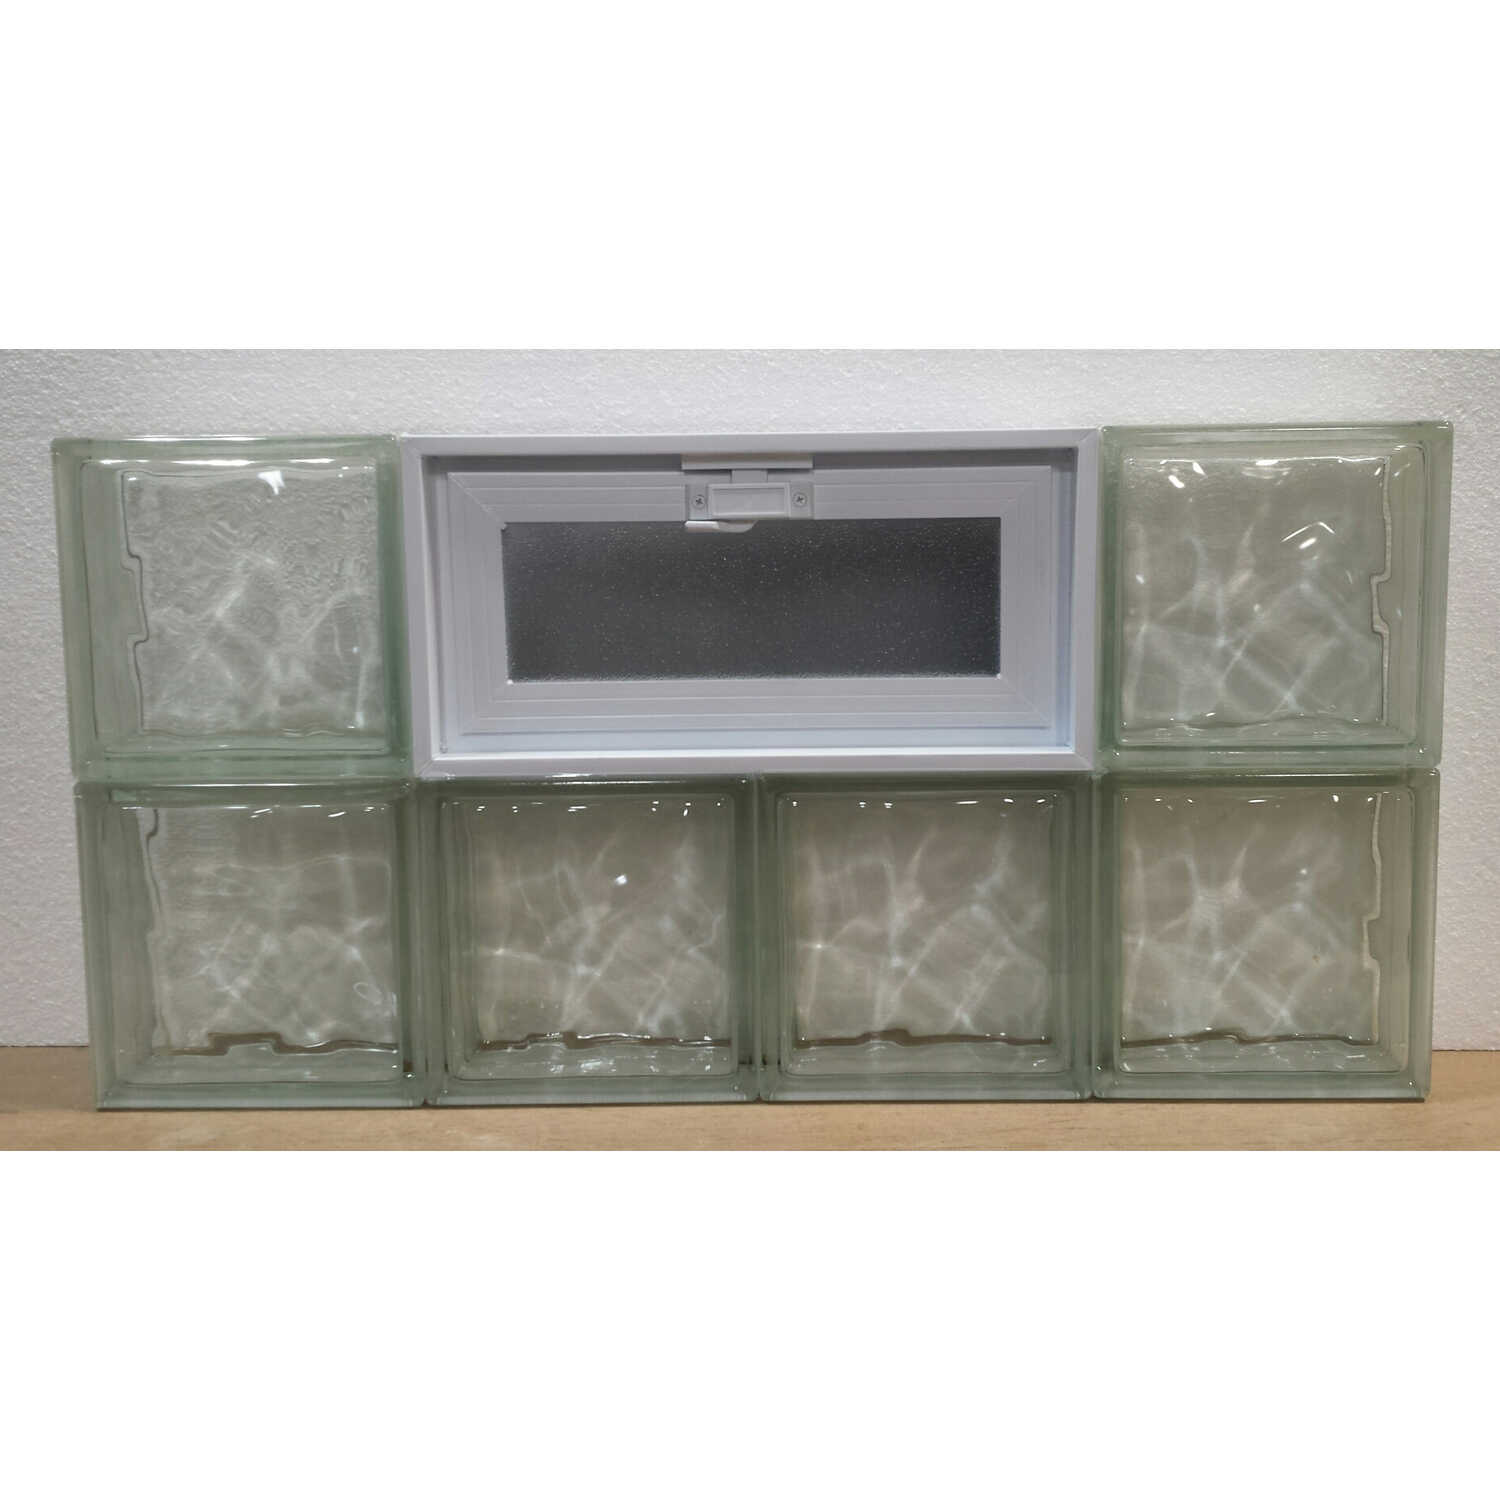 Clear Choice  16 in. H x 32 in. W x 3 in. D Vented Panel